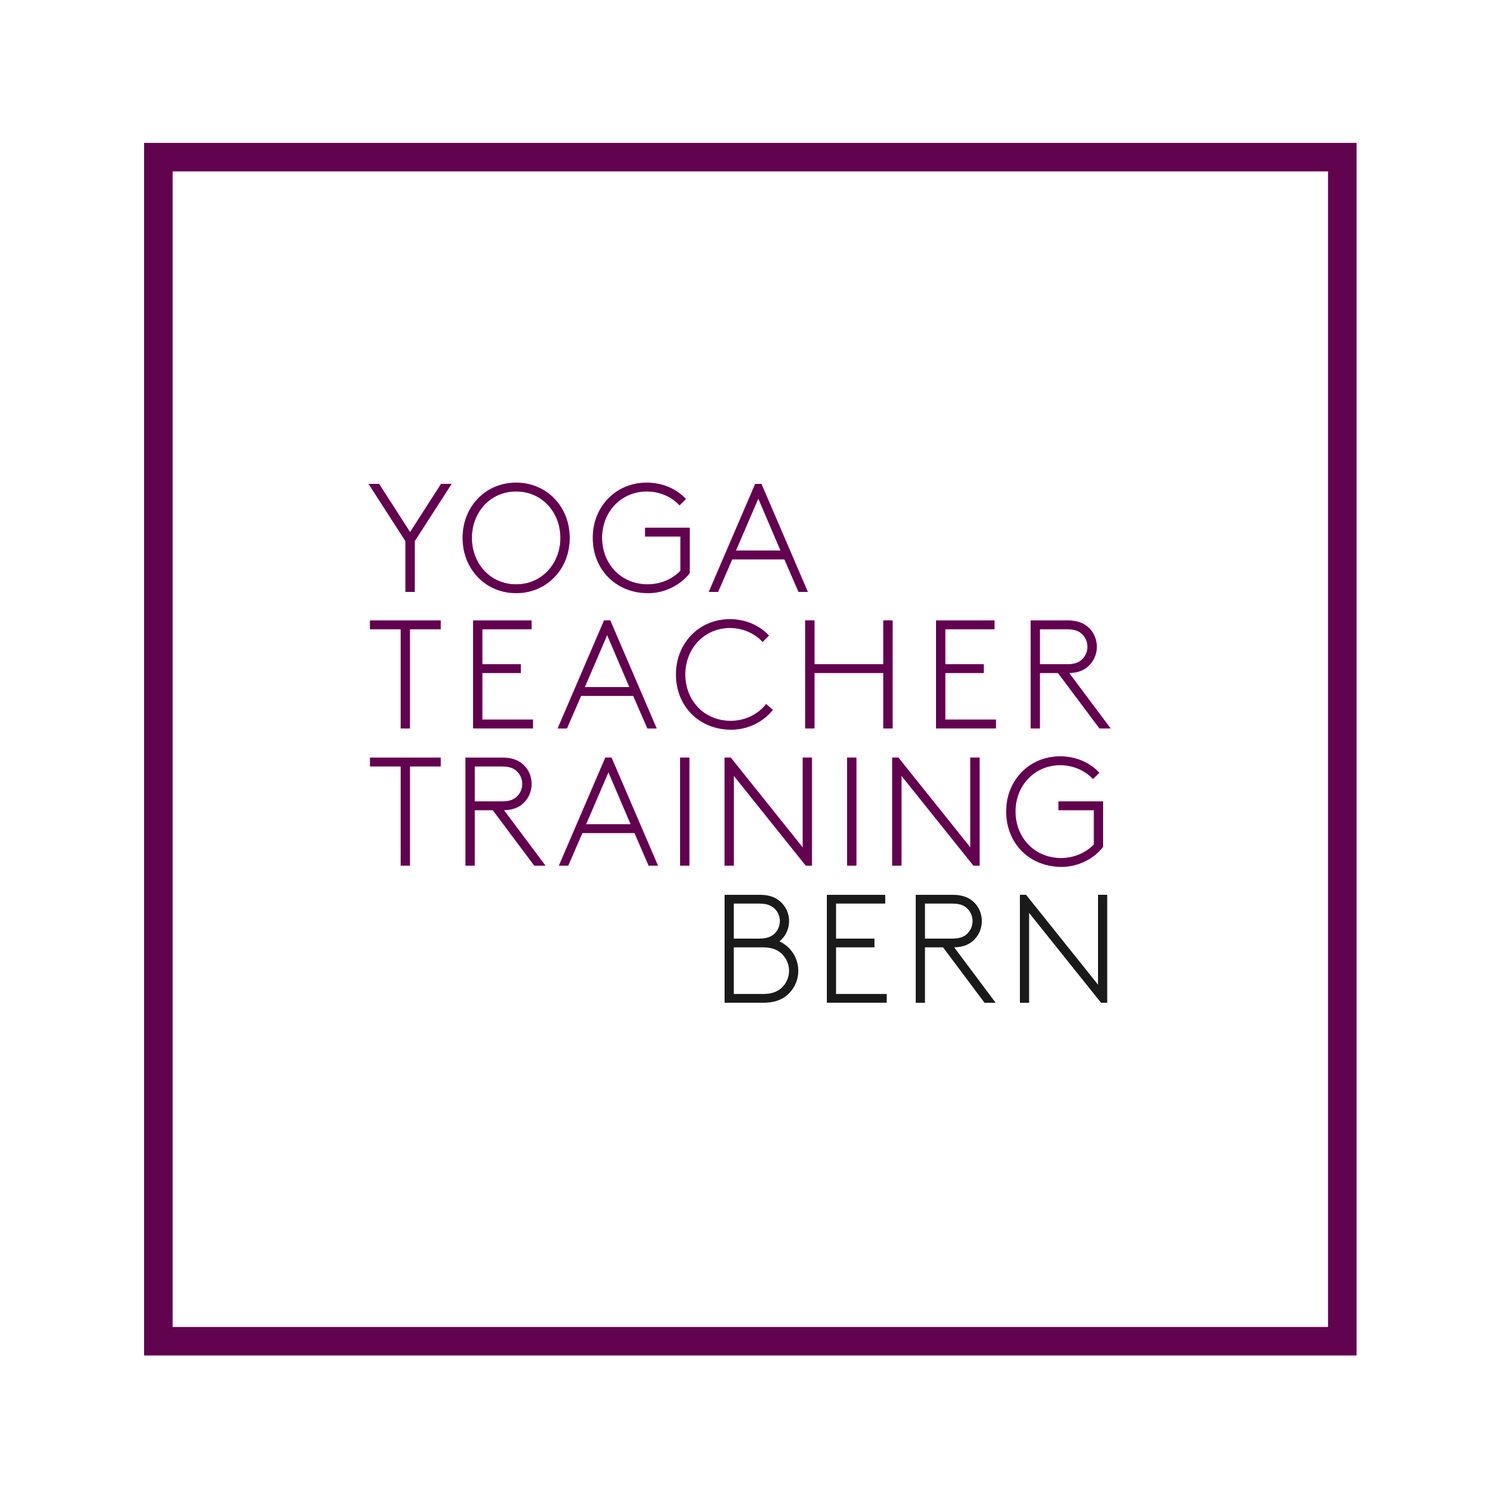 Yoga Teacher Training Bern